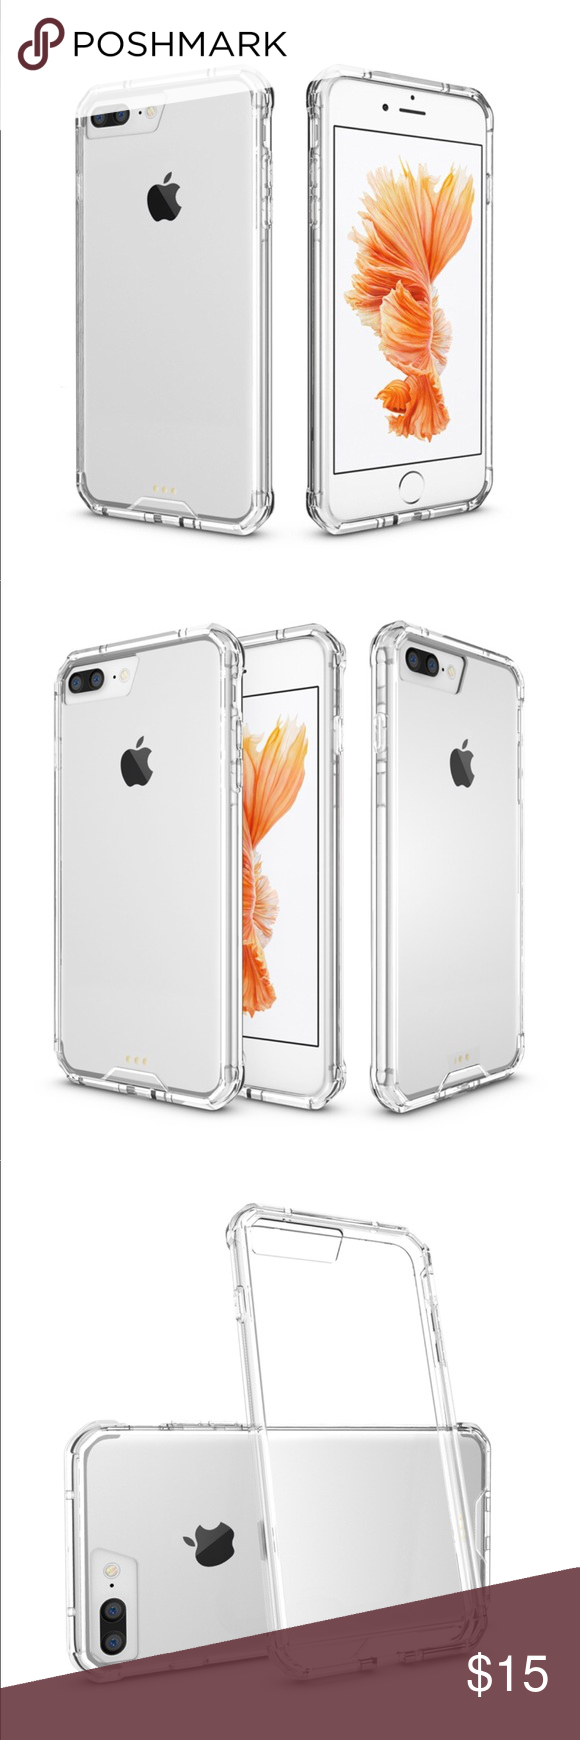 Iphone 8 8plus Clear Case Durable Protection Cover Iphone Clear Cases Iphone 8